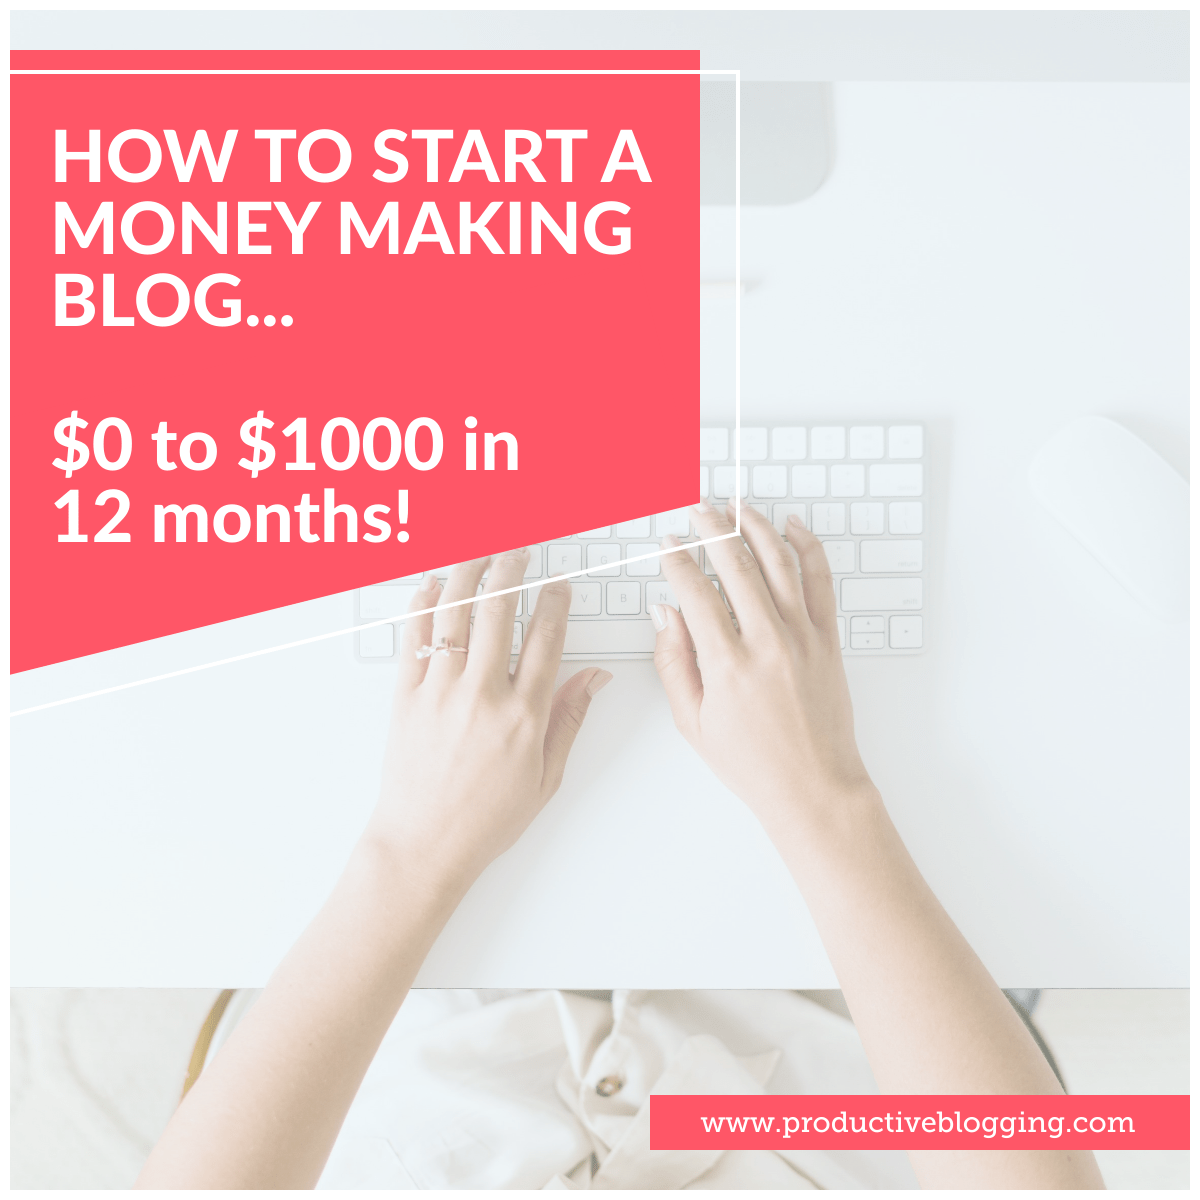 How to start a money making blog $0-$1000 in 12 months!